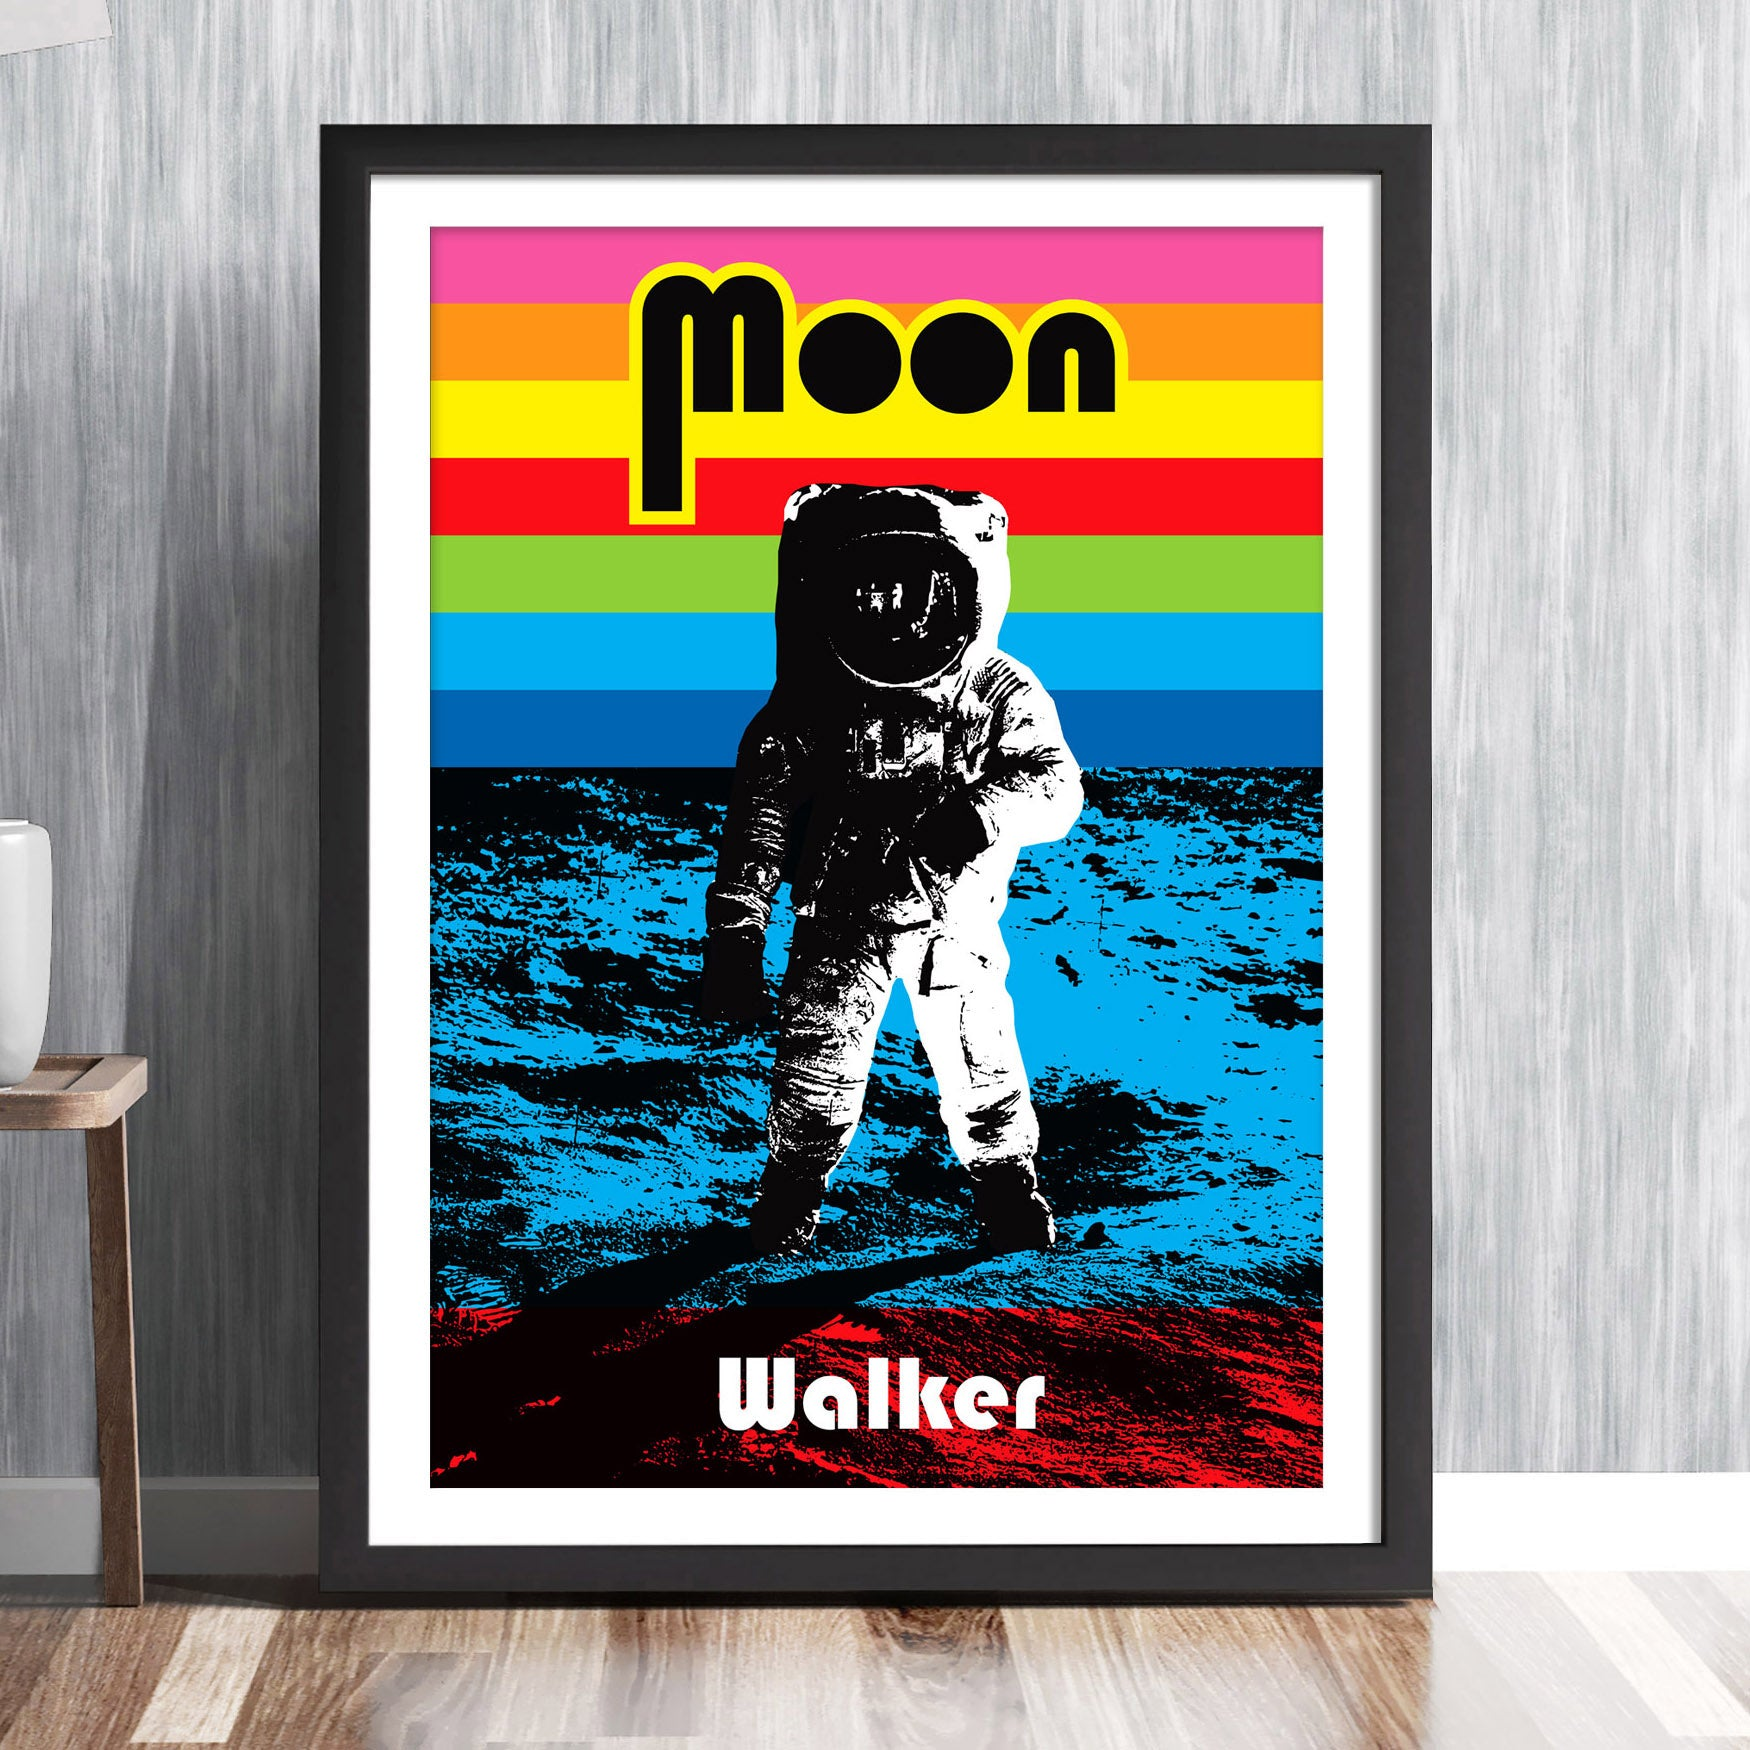 Moon Walker Lunar landing NASA Apollo Pop Art print - 'Unframed'